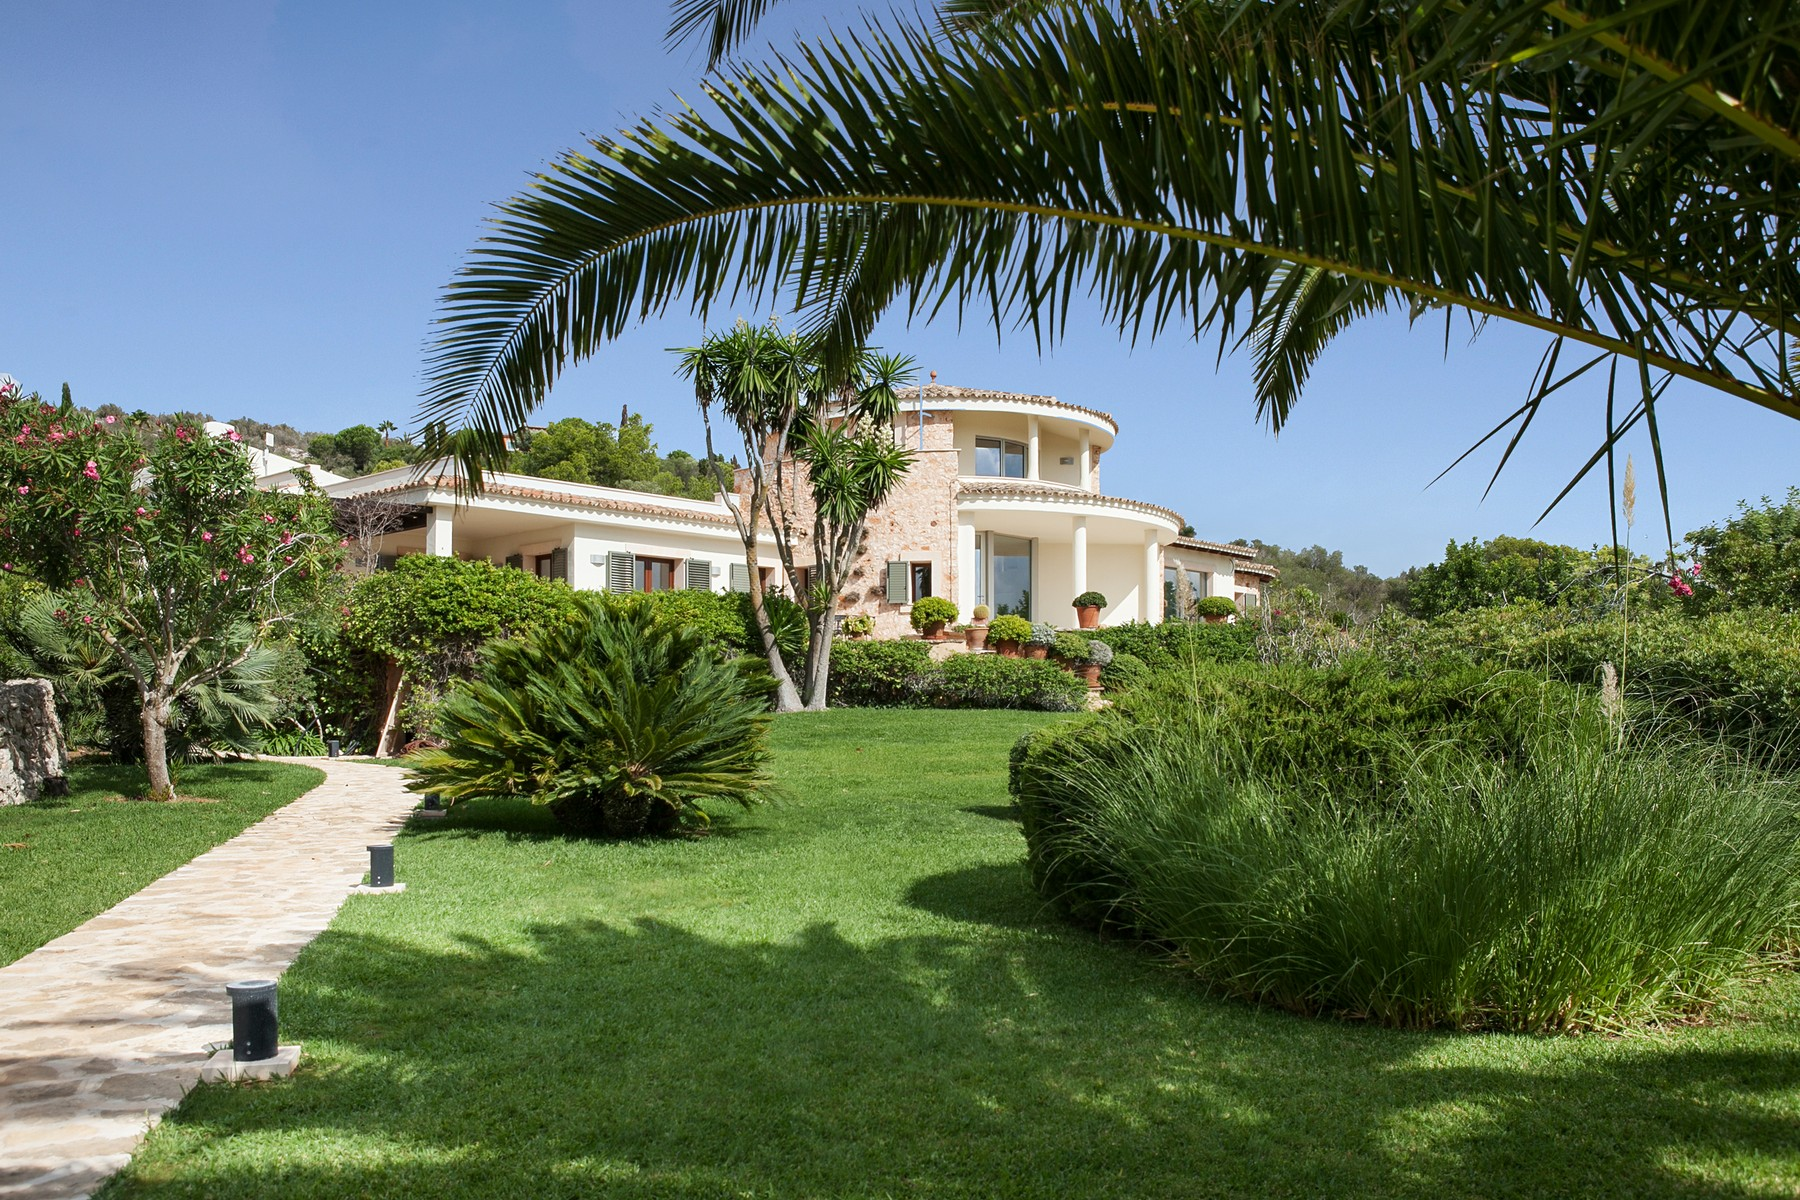 Casa Unifamiliar por un Venta en Country Estate with sea views near Porto Colom es caritxo Porto Colom, Mallorca 07669 España